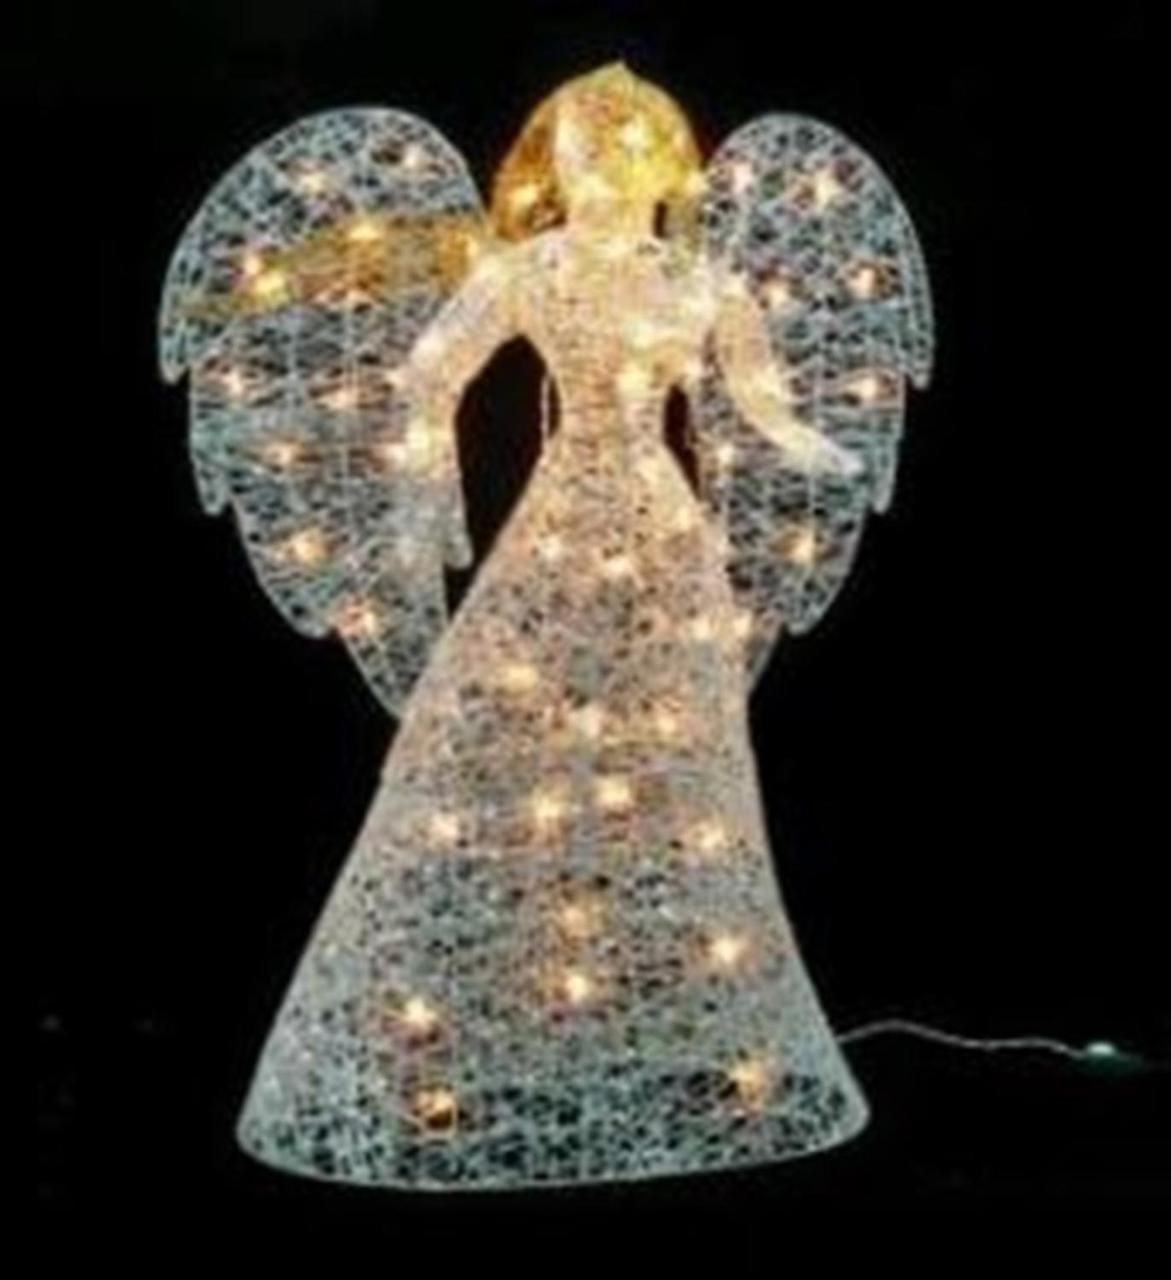 Lighted Outdoor Christmas Angels Outdoor Lighted Christmas Angels Vi Outdoor Christmas Decorations Lights Outdoor Christmas Decorating With Christmas Lights